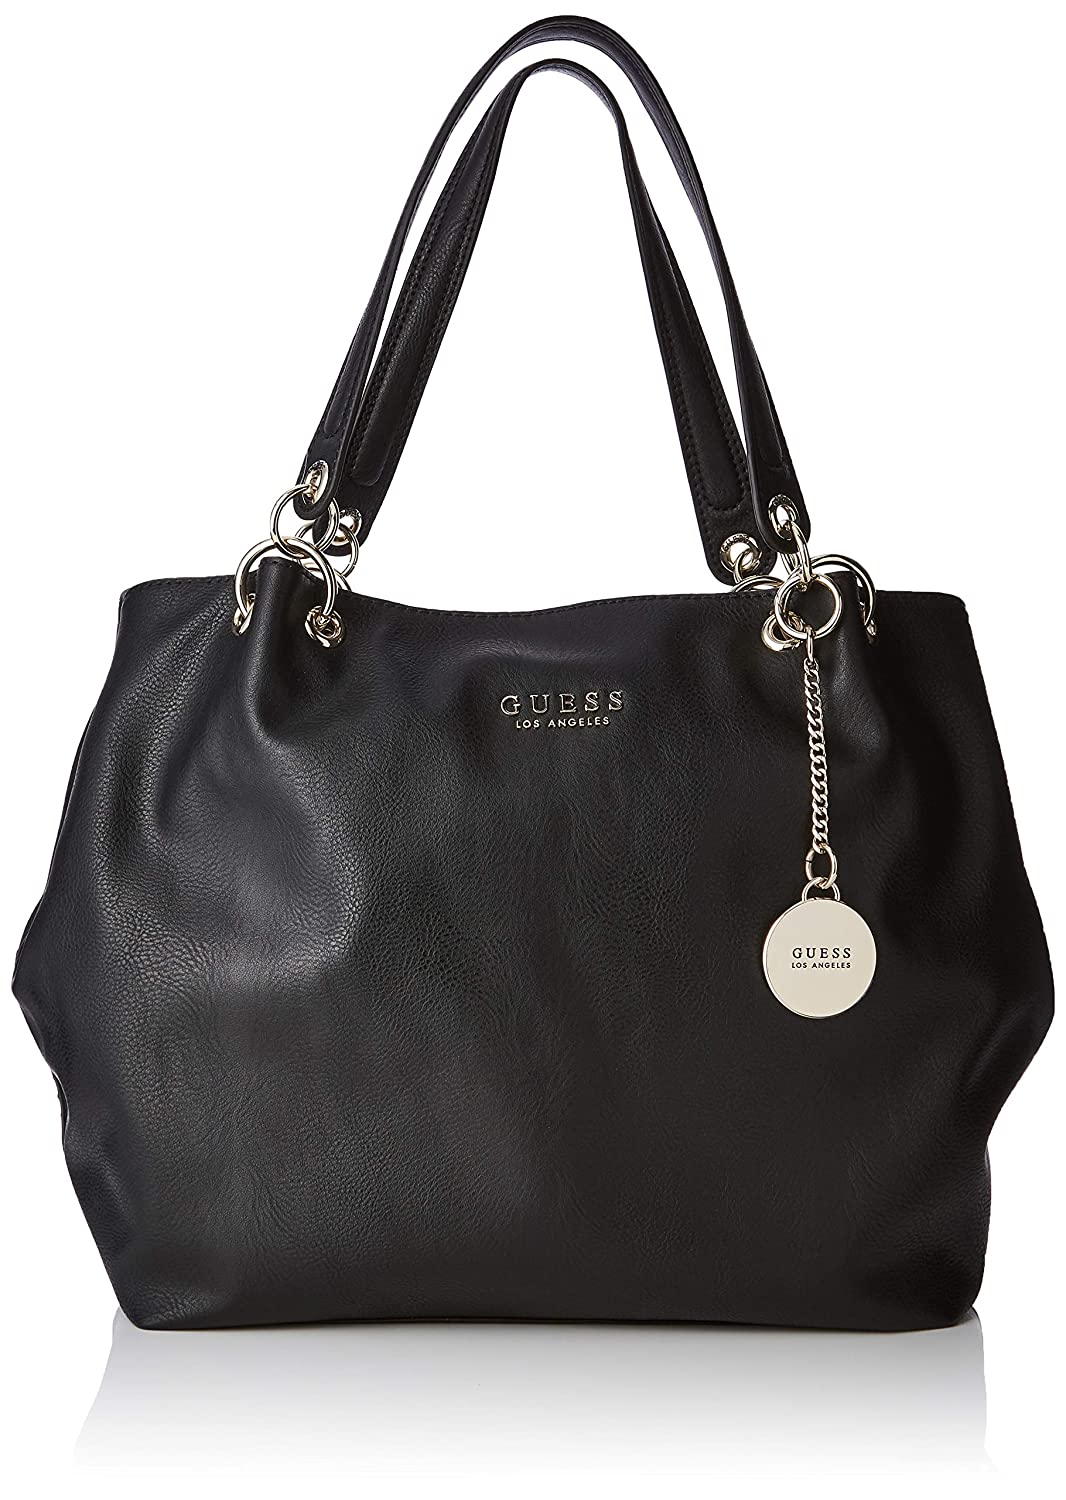 Shoppers y bolsos de hombro Mujer Guess Cary Carryall